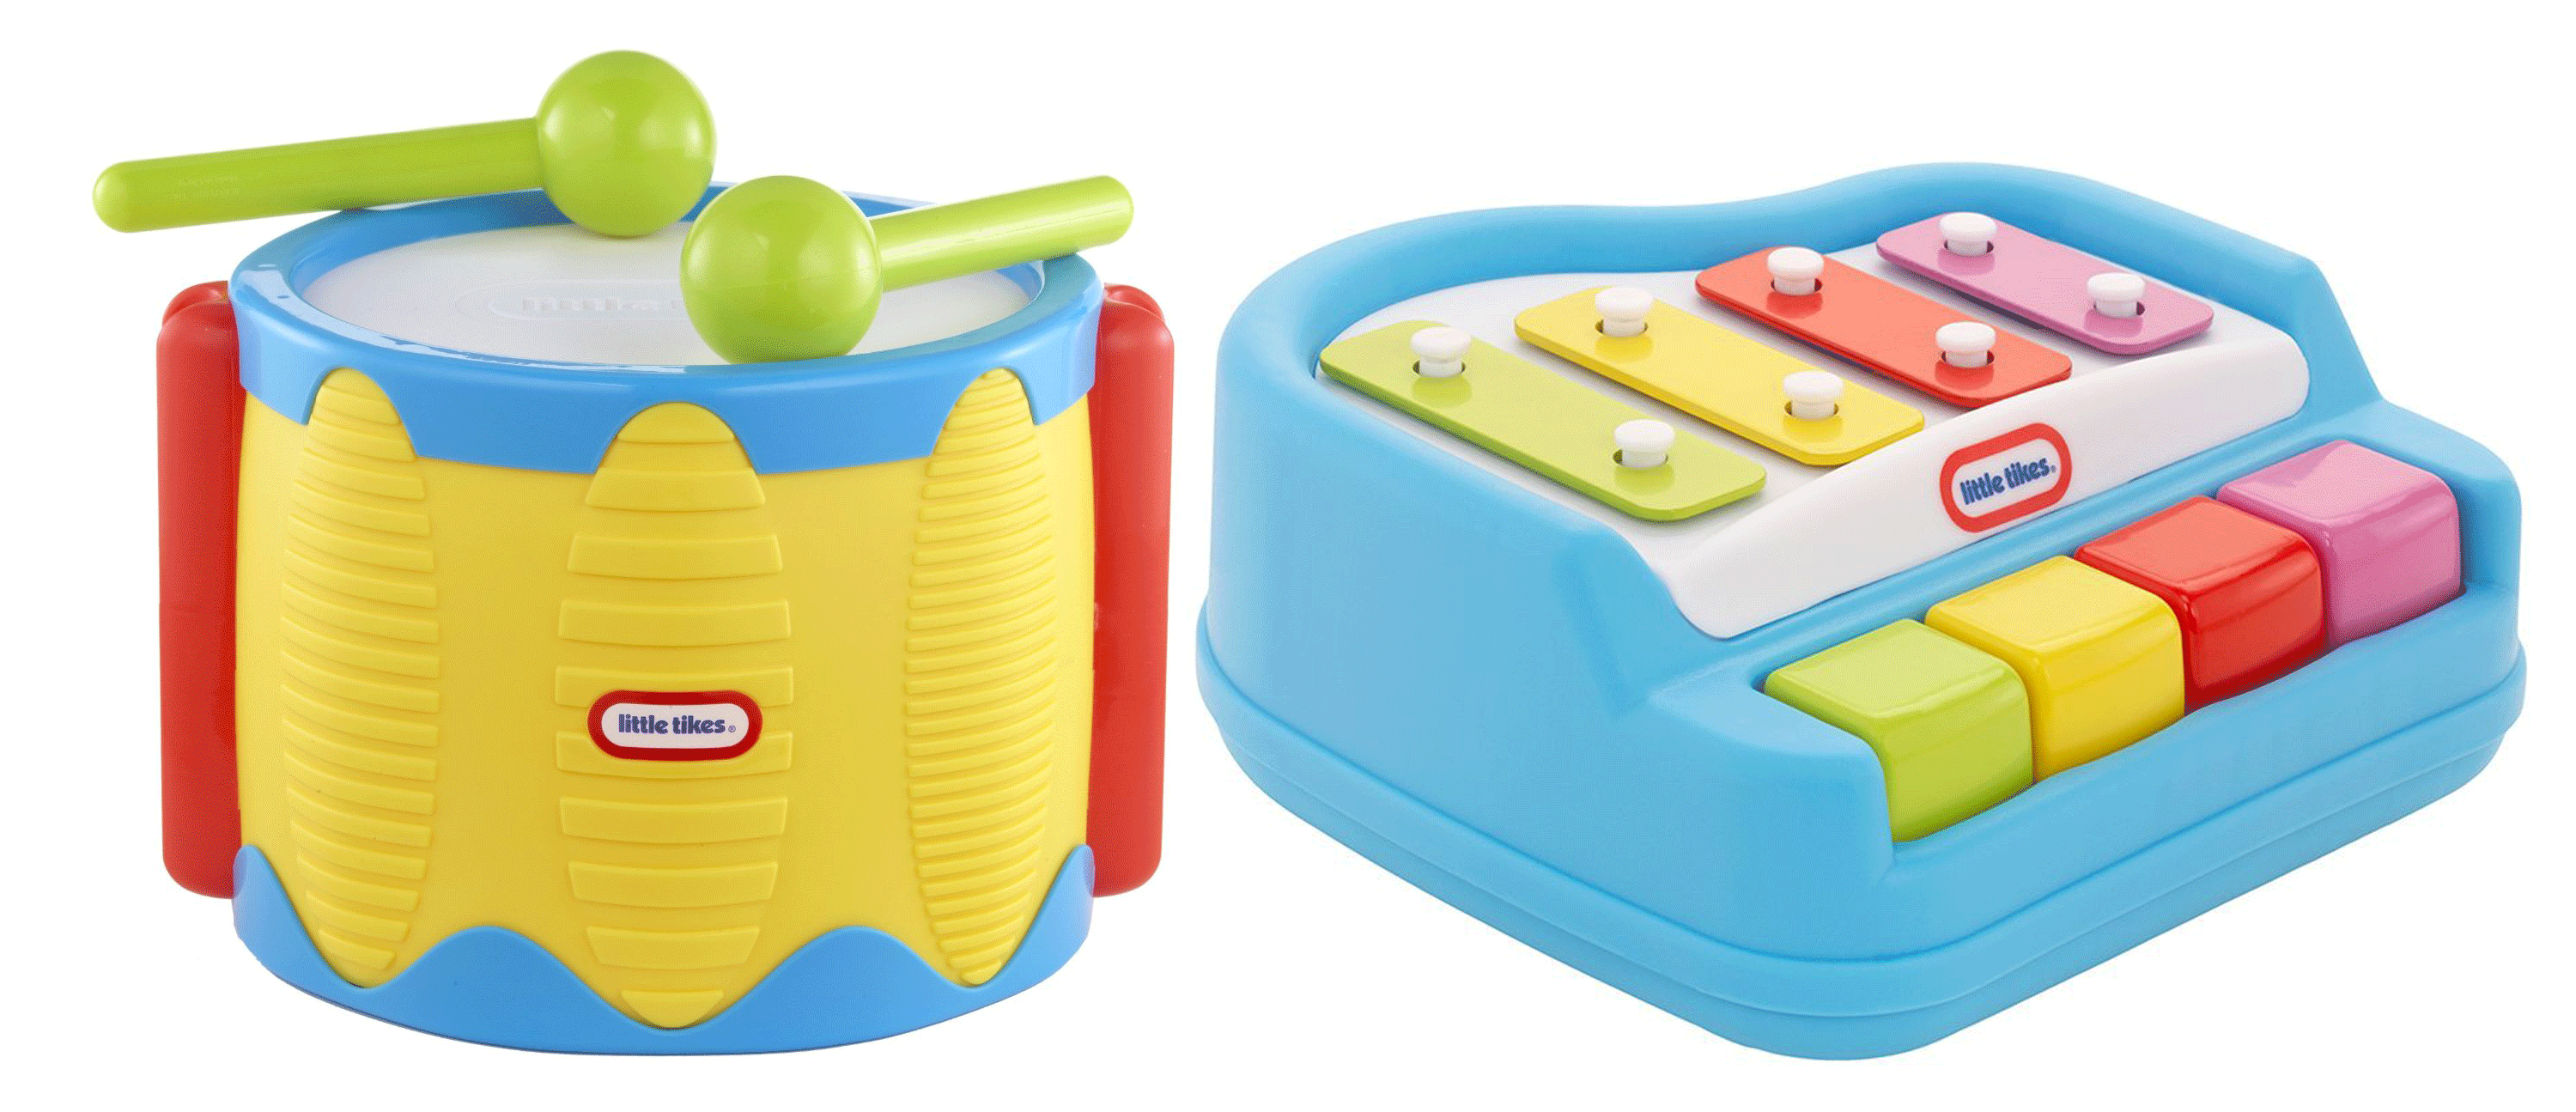 Toys For Little : Little tikes tap a tune instrument giveaway teaching